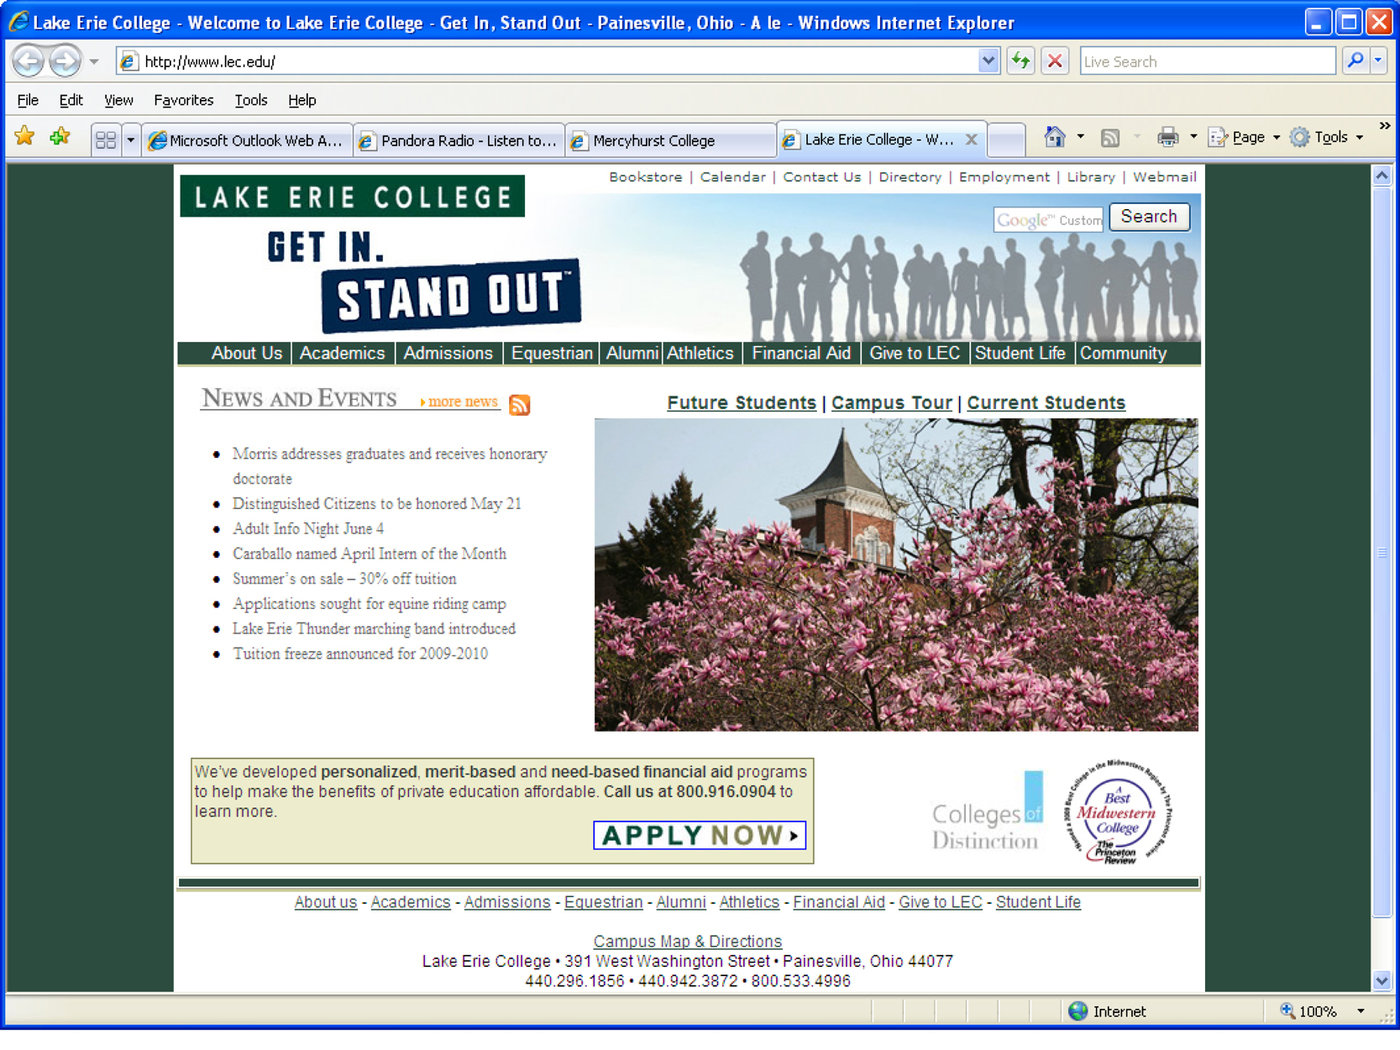 Lake Erie College Campus Map.Lake Erie College Website Redesign By Emilie Nerl At Coroflot Com